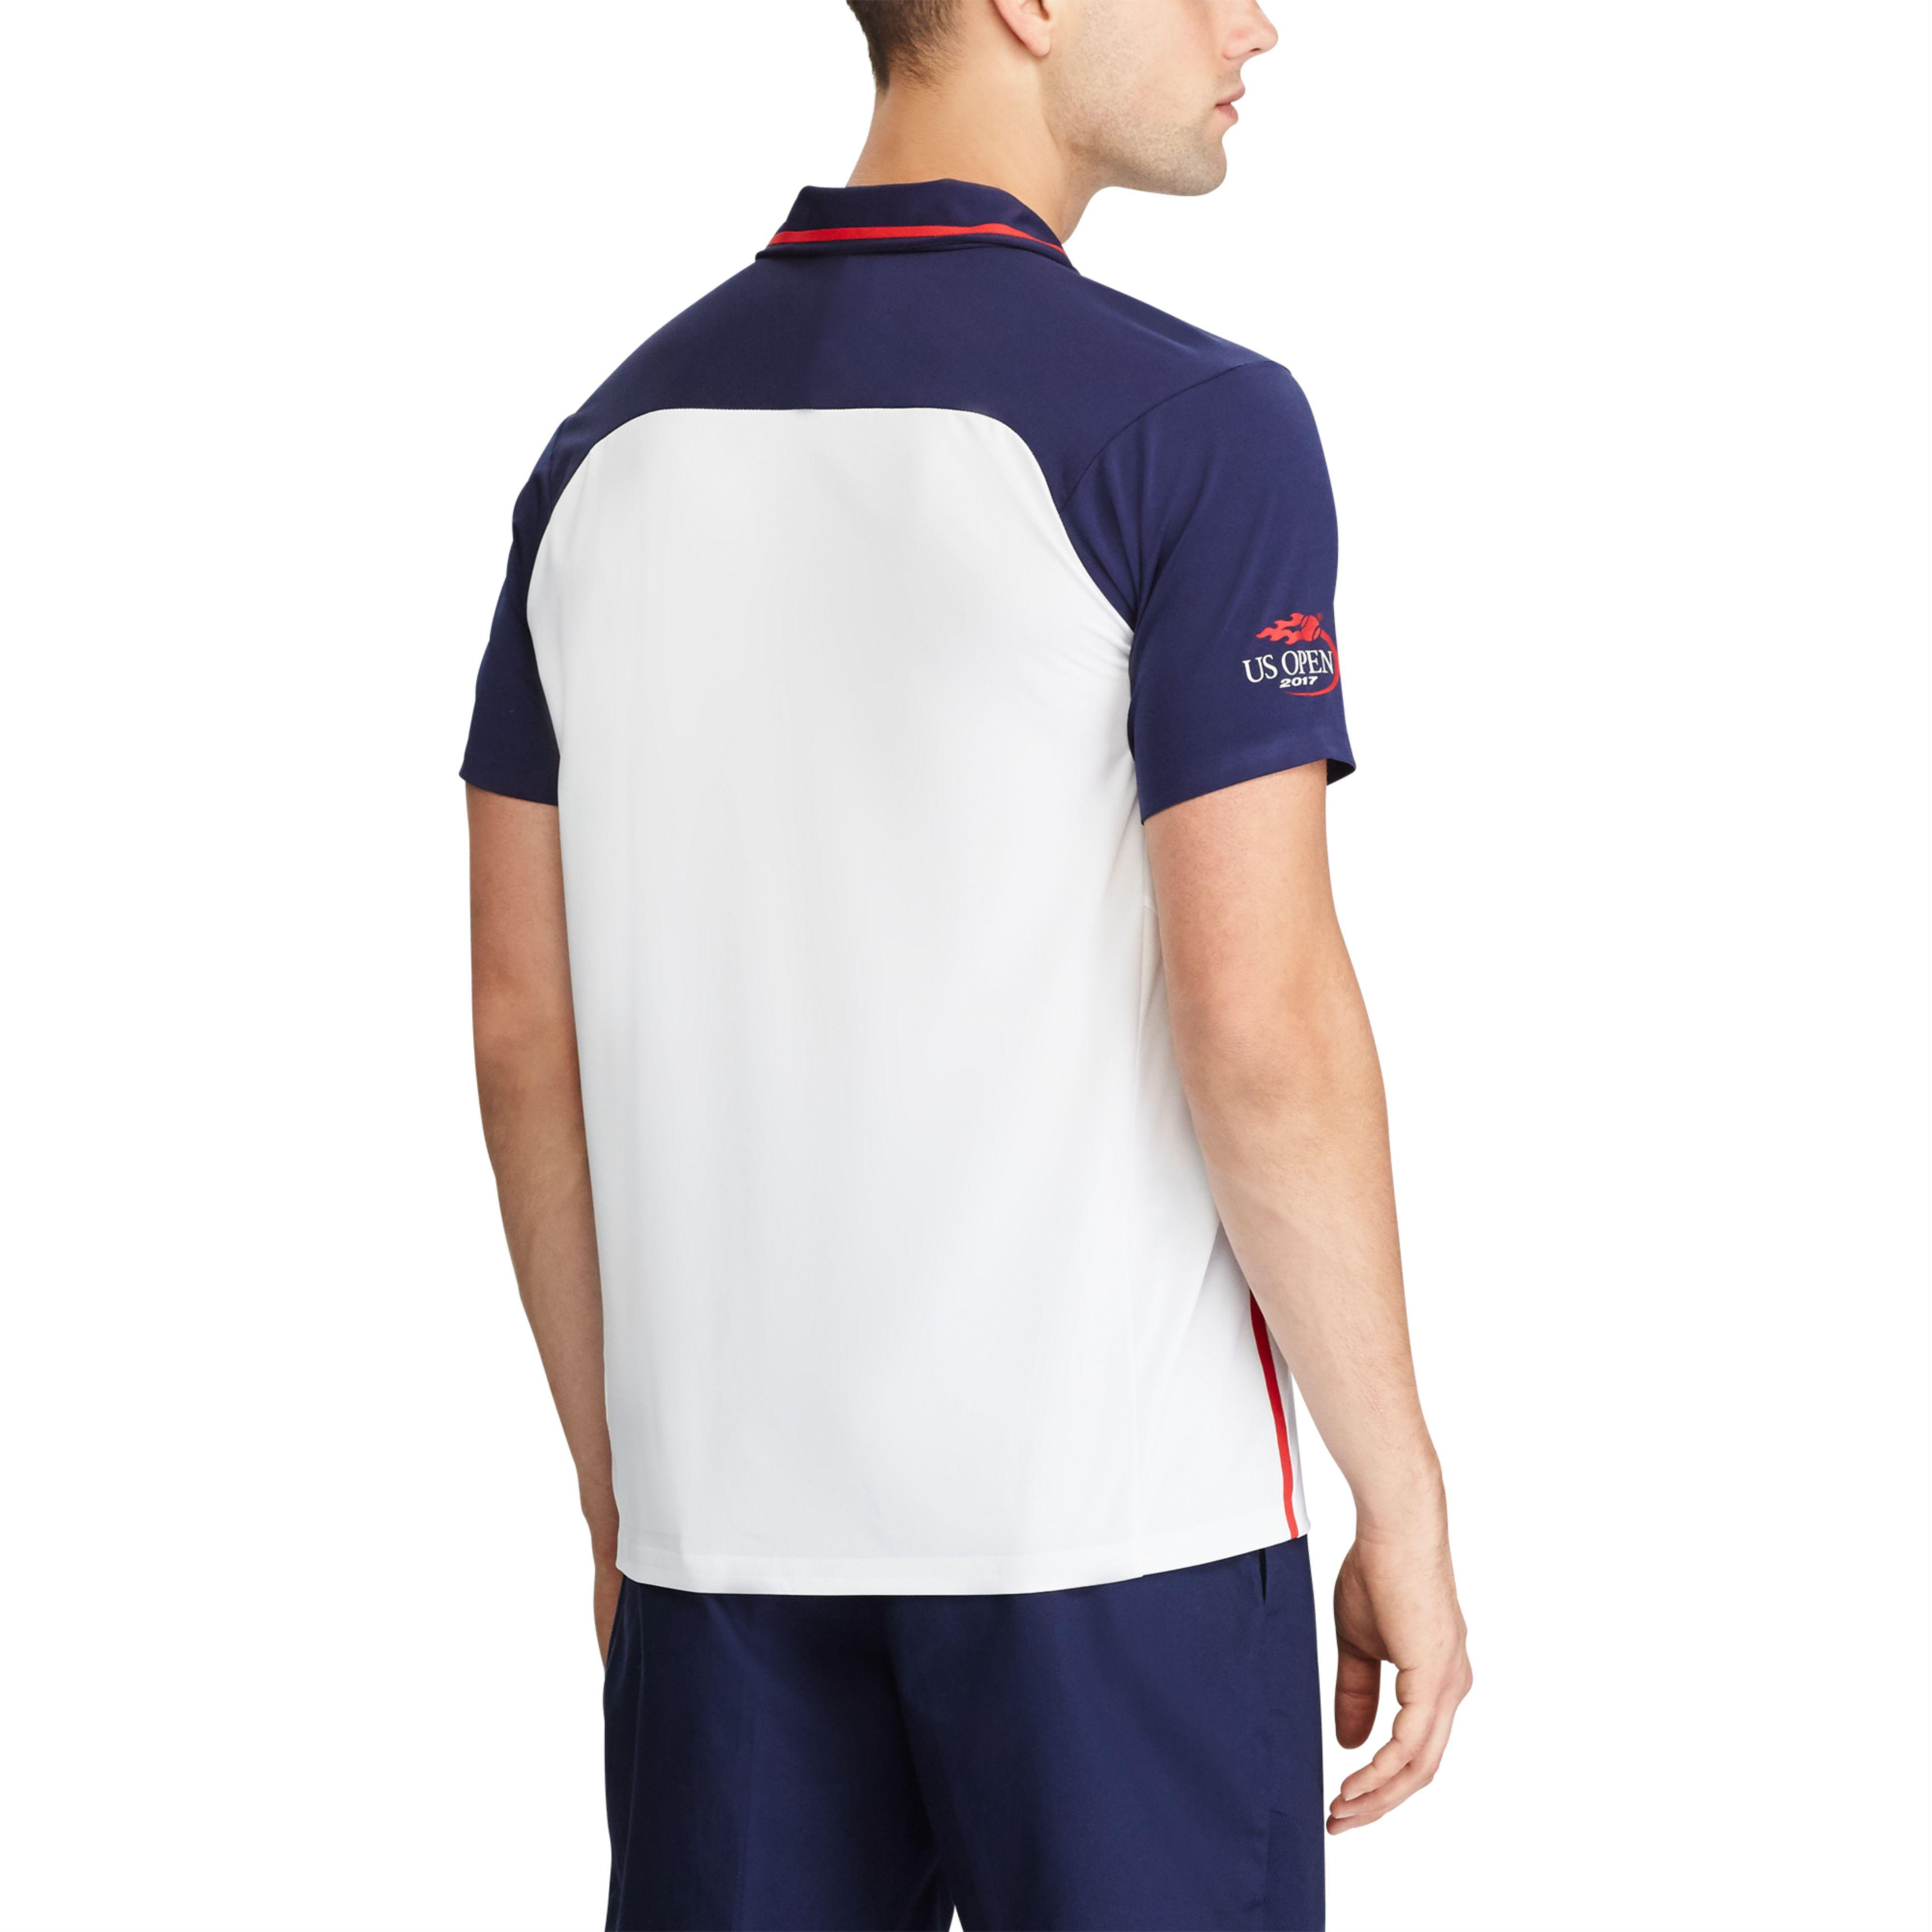 e952114ef2d88 ... reduced lyst polo ralph lauren us open active fit polo shirt in blue  for men cf935 ...